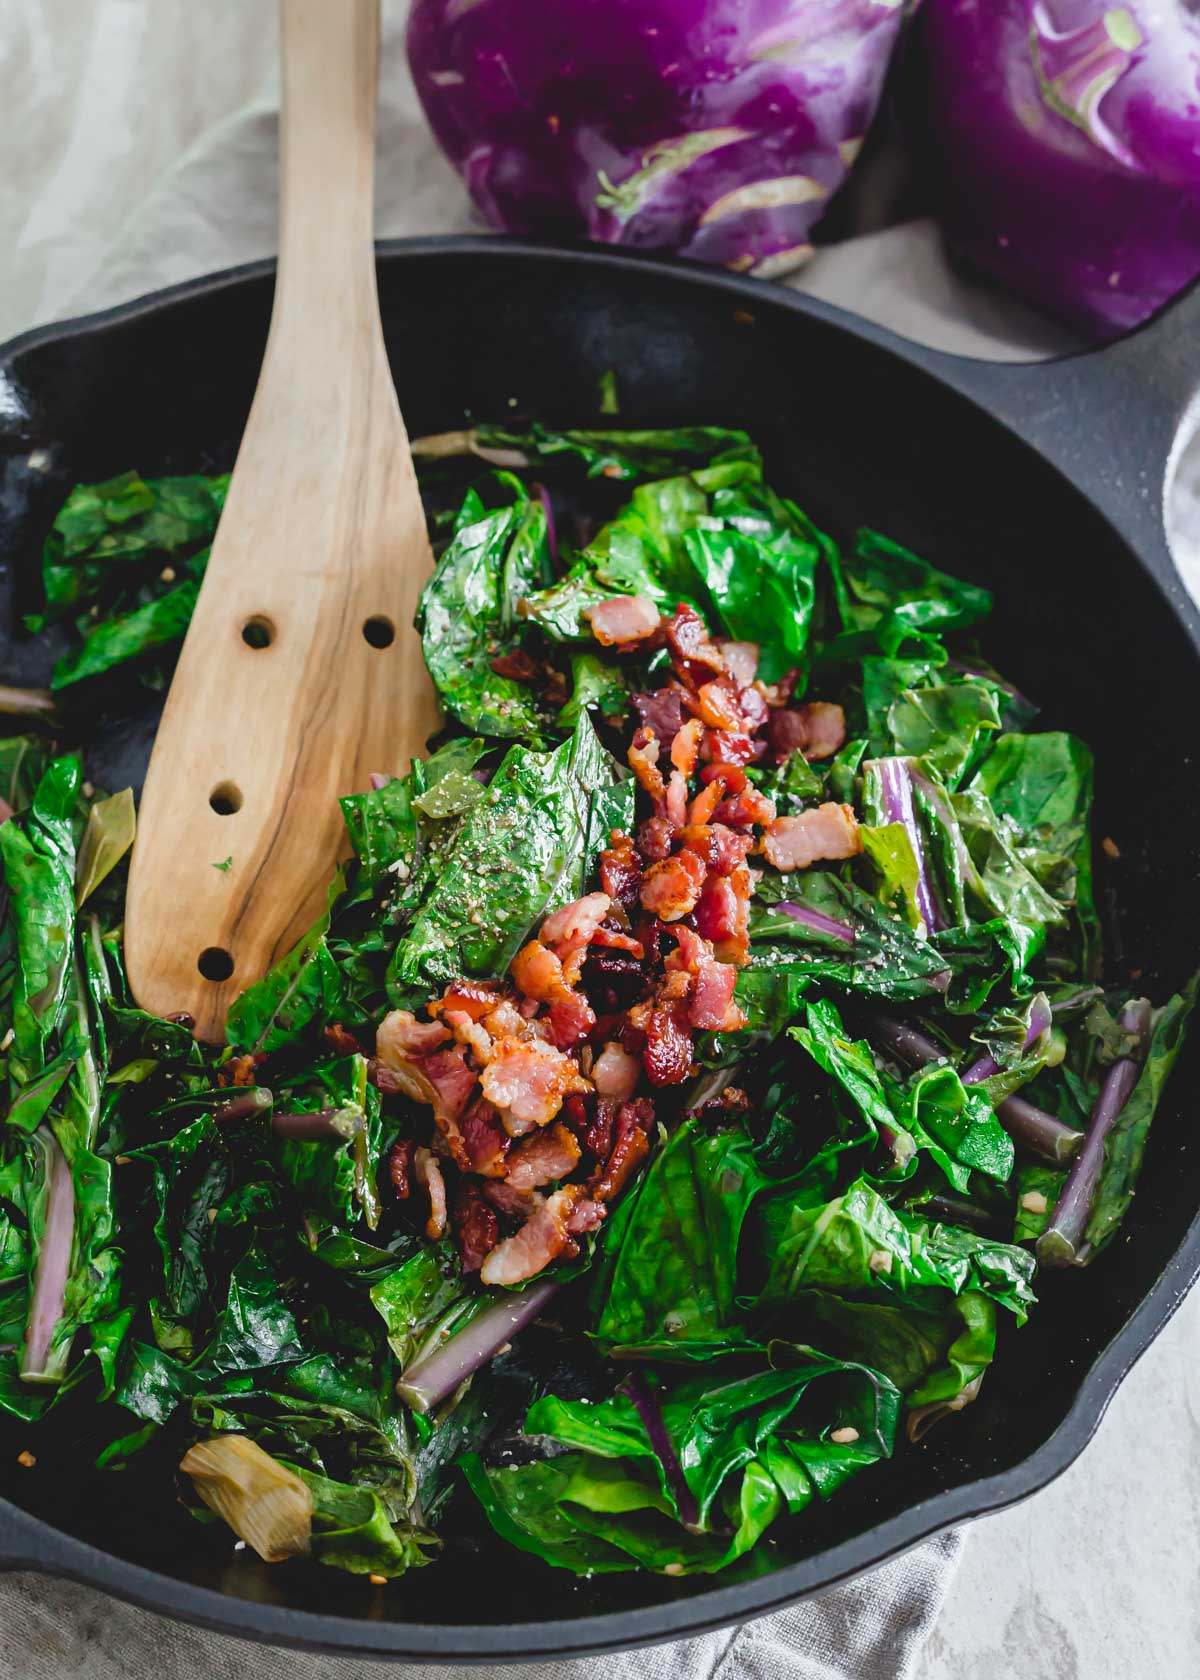 Sautéed kohlrabi greens with bacon in a cast iron skillet.